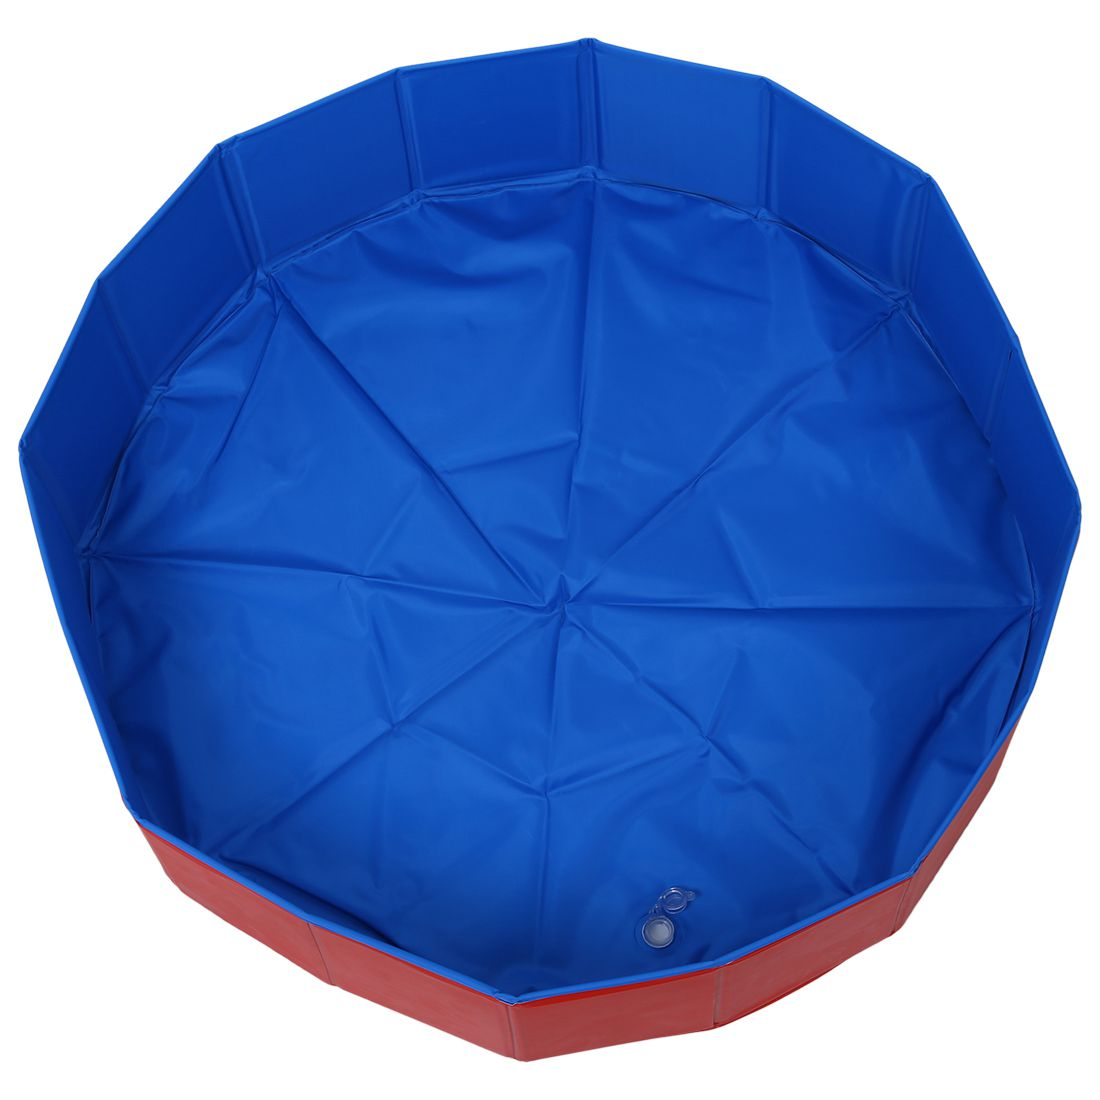 Home & Garden Foldable Pet Dog Swimming House Bed Summer Pool Blue+red Houses, Kennels & Pens